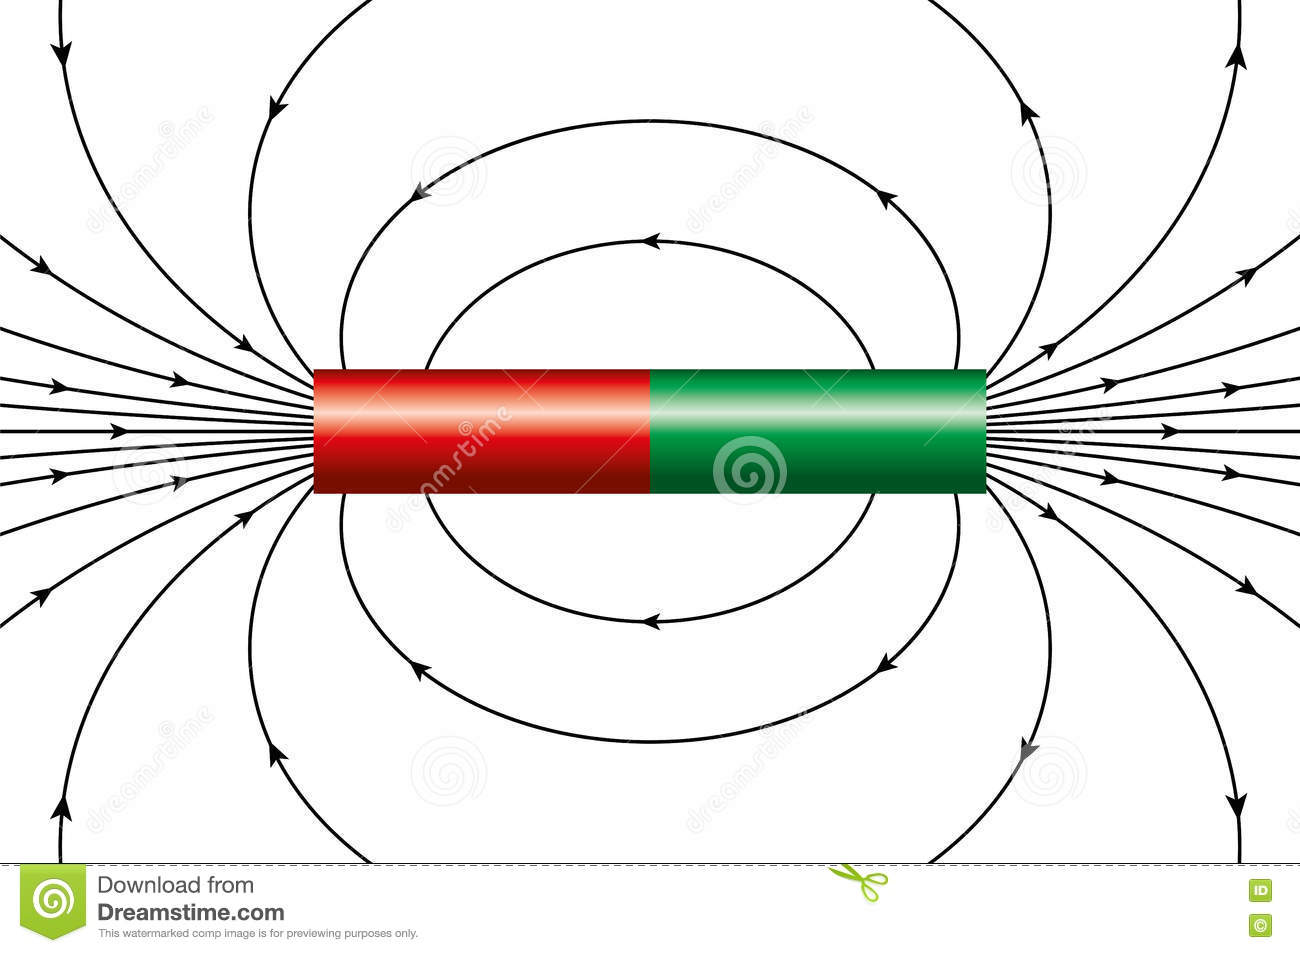 Magnetic field of a bar magnet stock vector illustration of magnetic field of a bar magnet royalty free vector ccuart Image collections